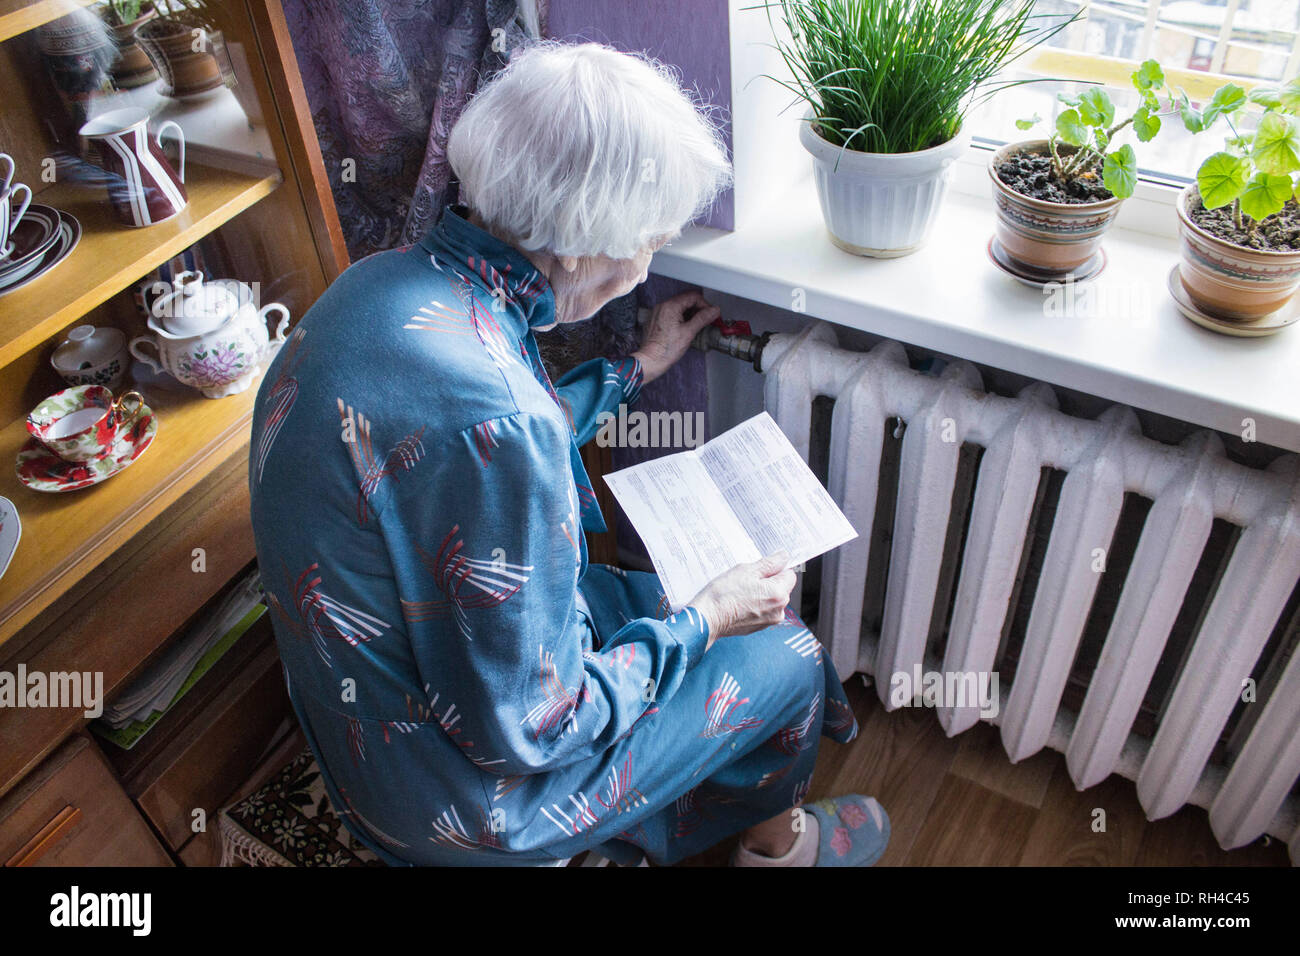 Woman holding cash in front of heating radiator. Payment for heating in winter. Selective focus. - Stock Image